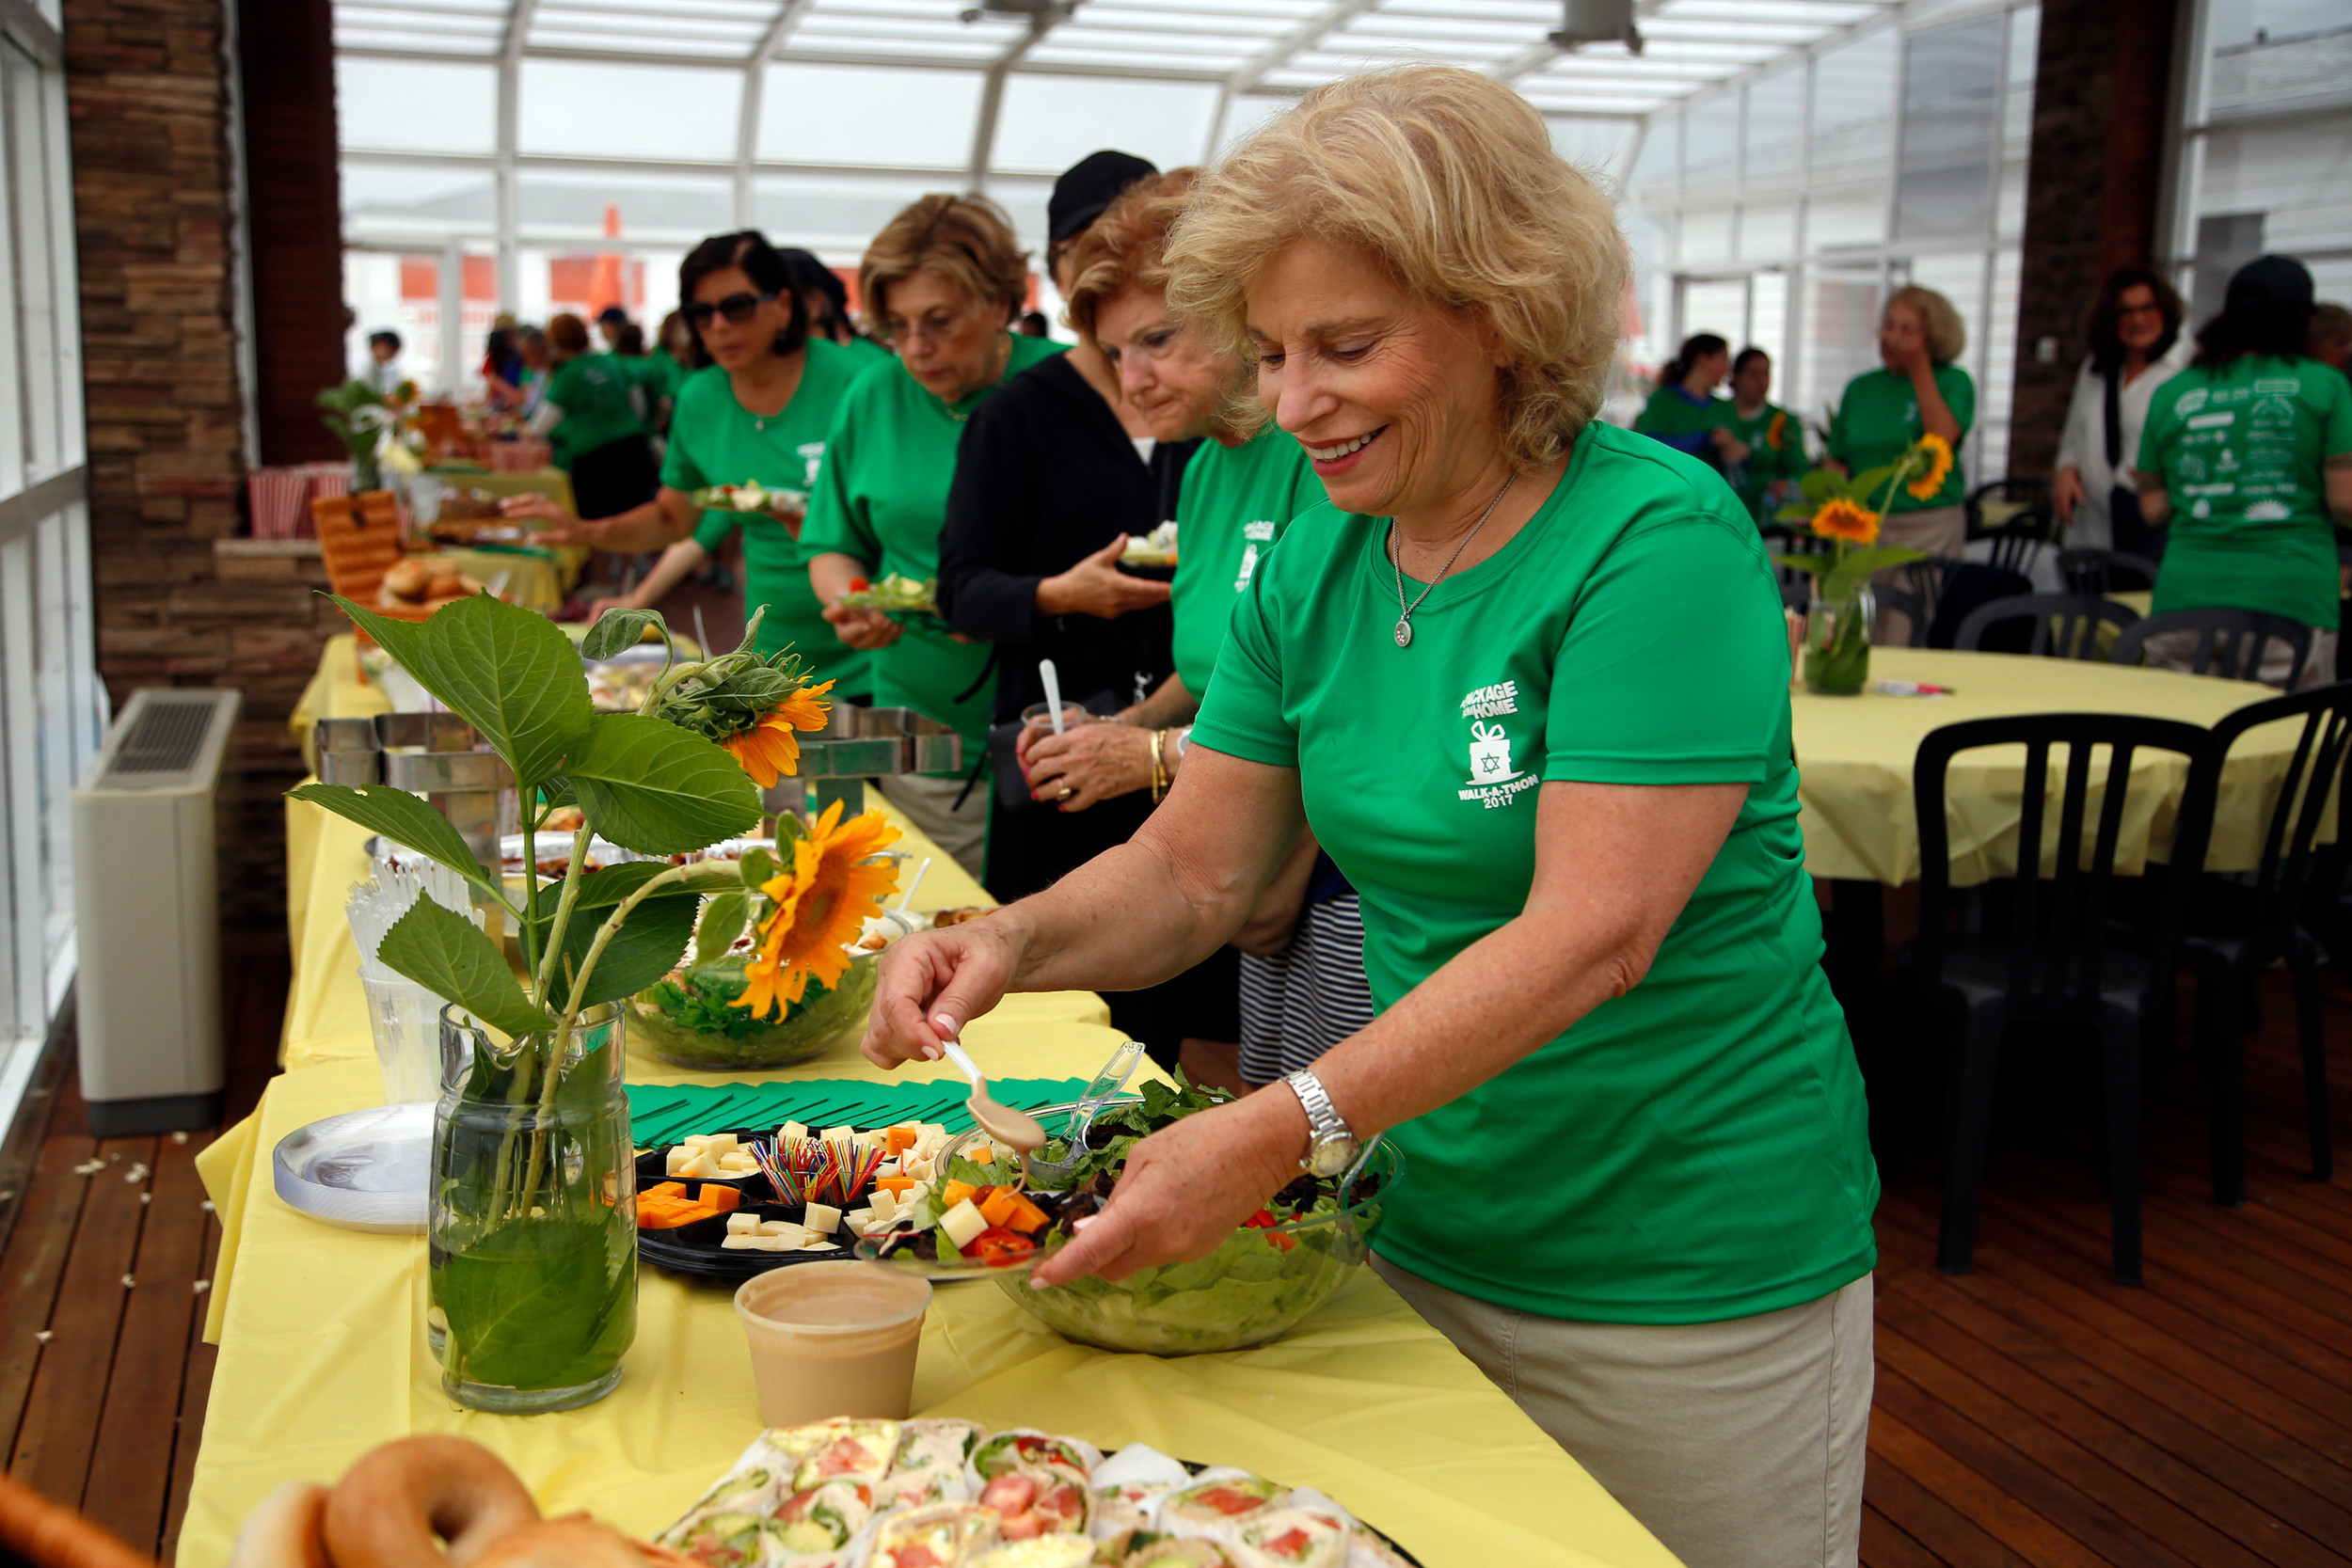 After the walk brunch was served at Sunny Atlantic Beach Club. Lynda Brafman drizzled some dressing on her salad.